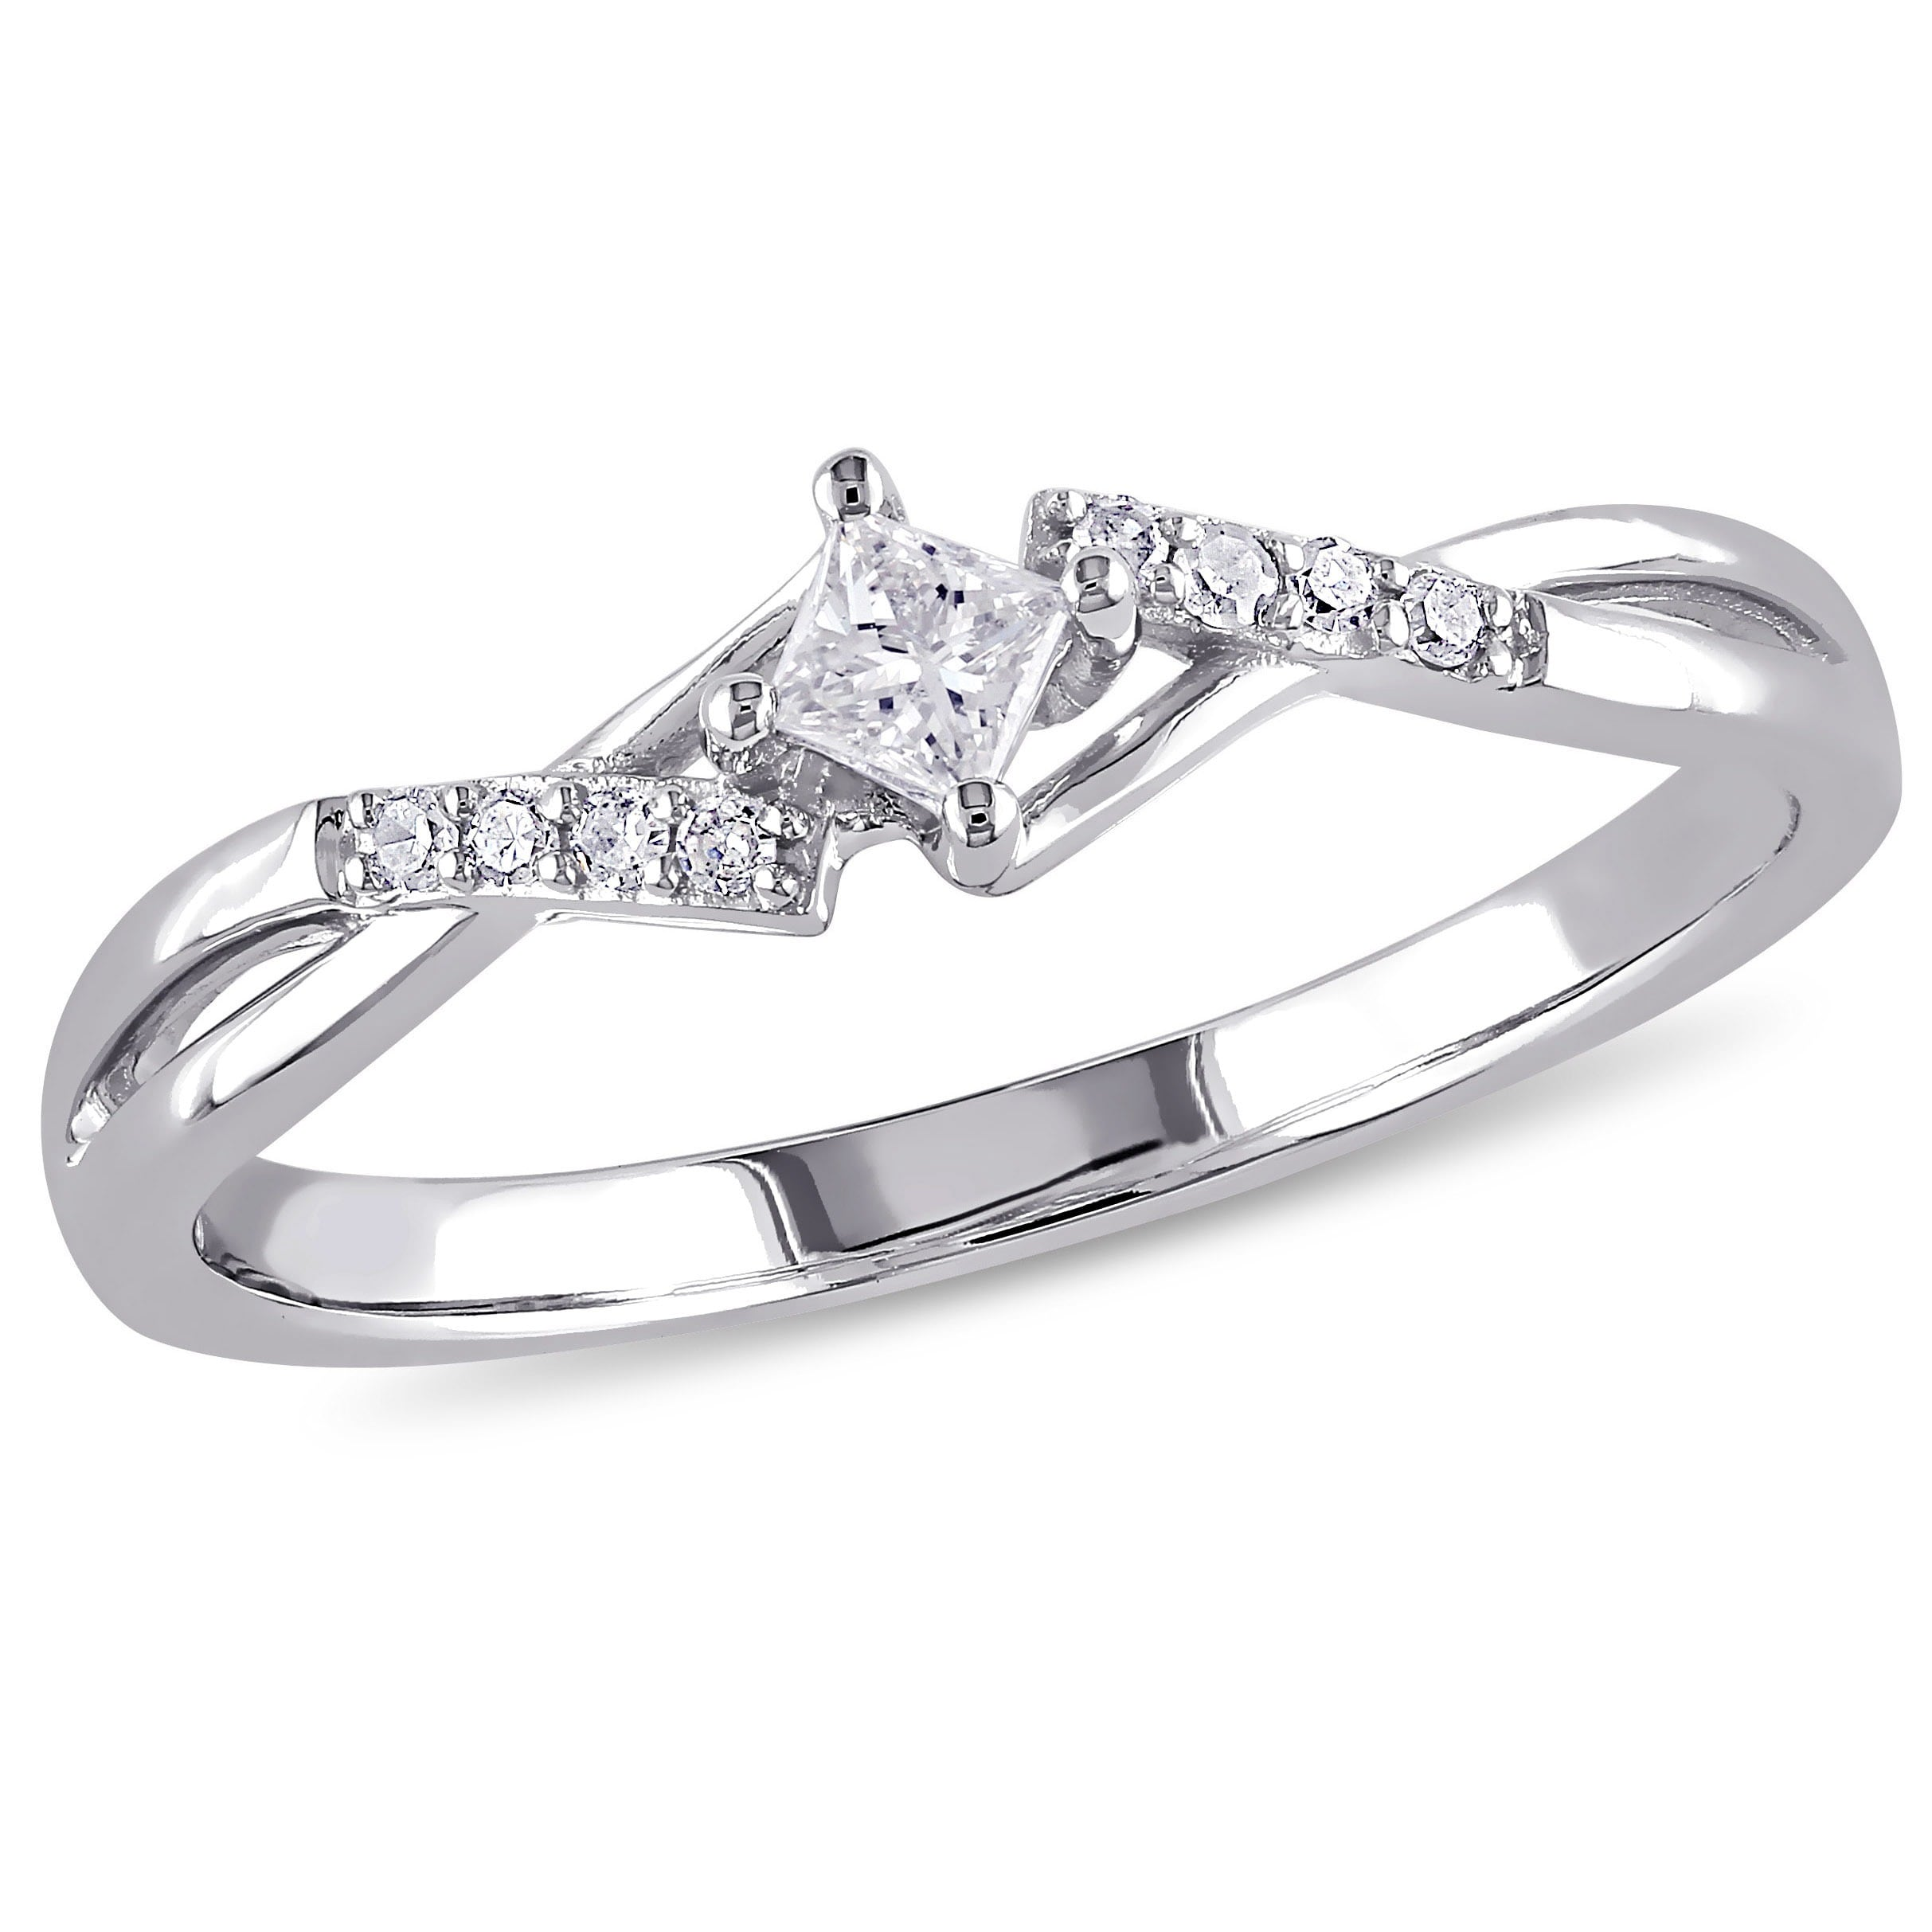 ring silver crislu rings wedding in cross cubic zirconia sterling criss